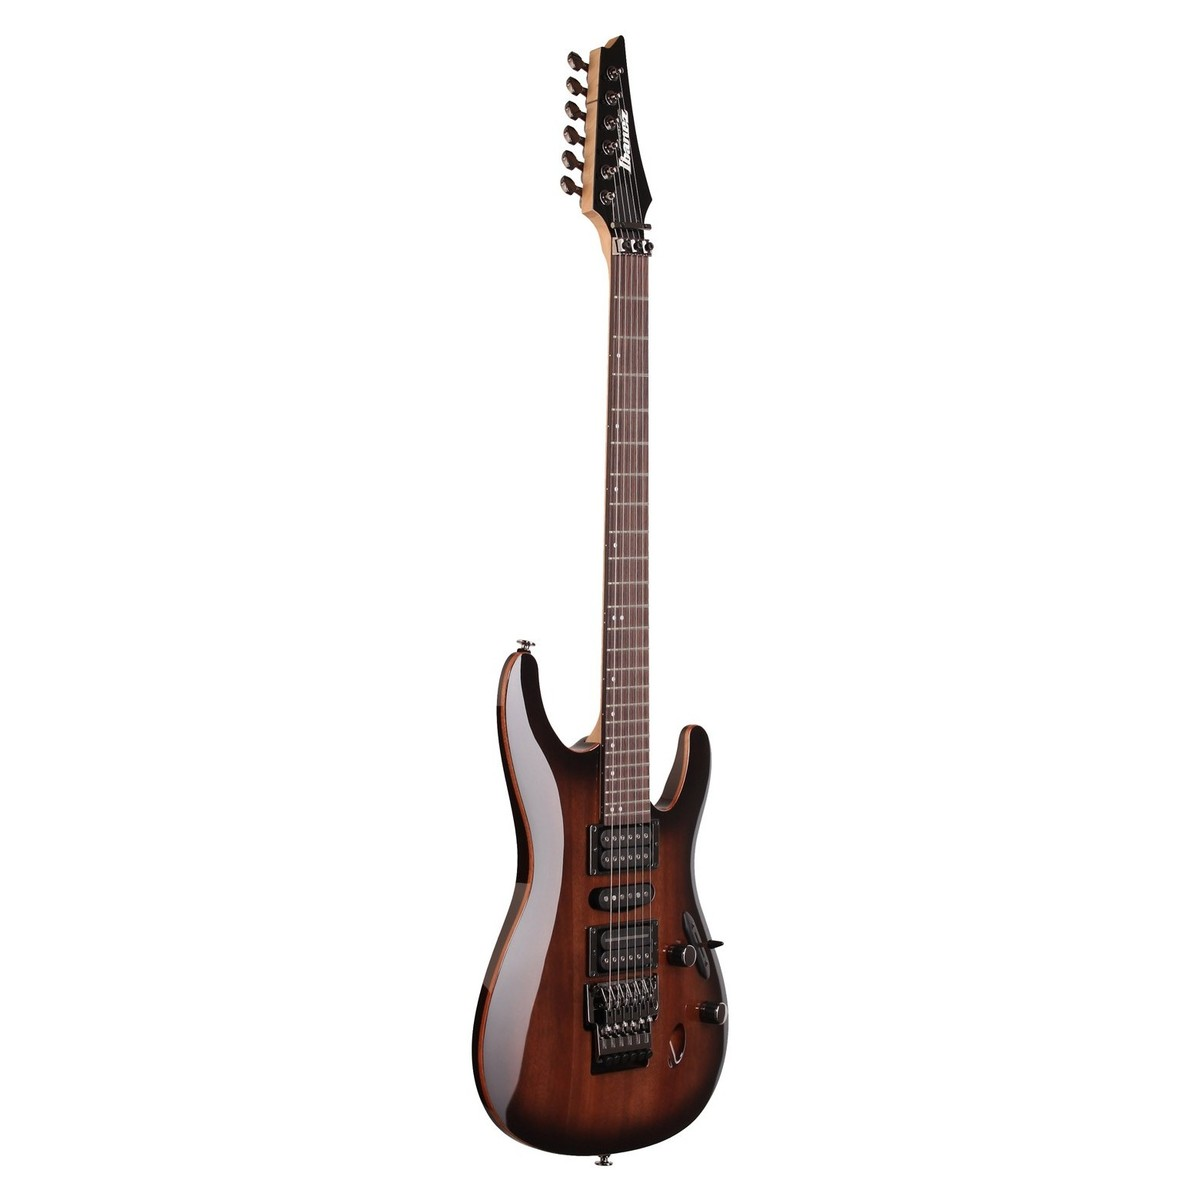 ibanez s5570 prestige electric guitar trans black sunburst at. Black Bedroom Furniture Sets. Home Design Ideas